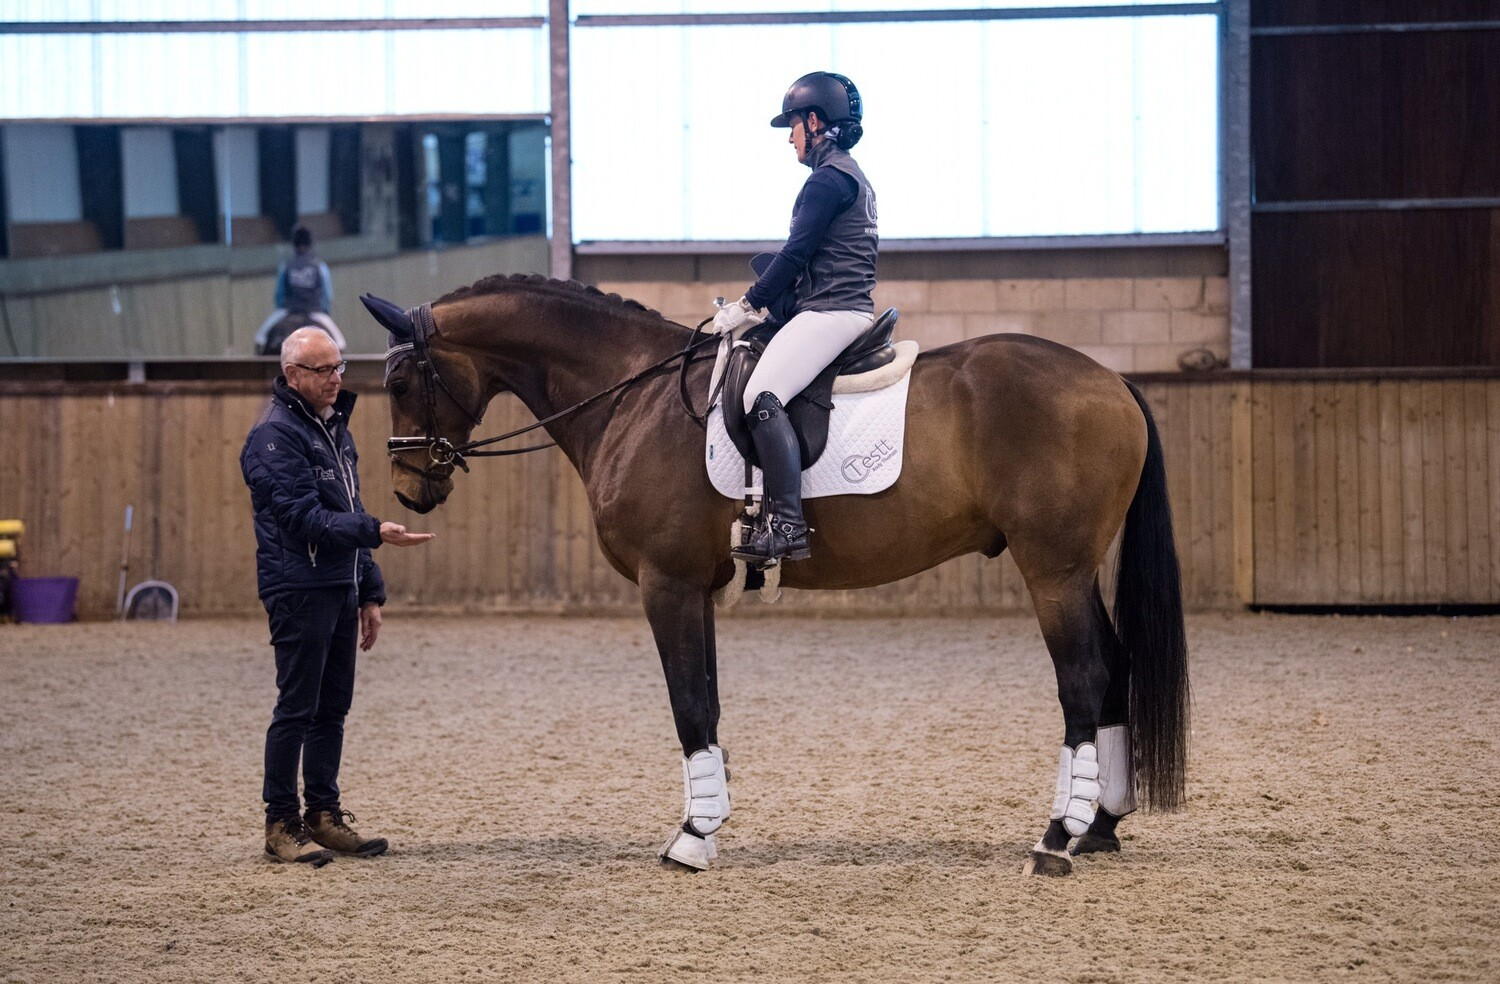 Testt®️: Rider Symmetry Assessment: 60 Minutes : February 7th : Hosted By Libby Shakesby At Manor Farm : Please Do Not Use Link Unless On Libby's List : £5 Charity Donation Arena Fee Pay On Day